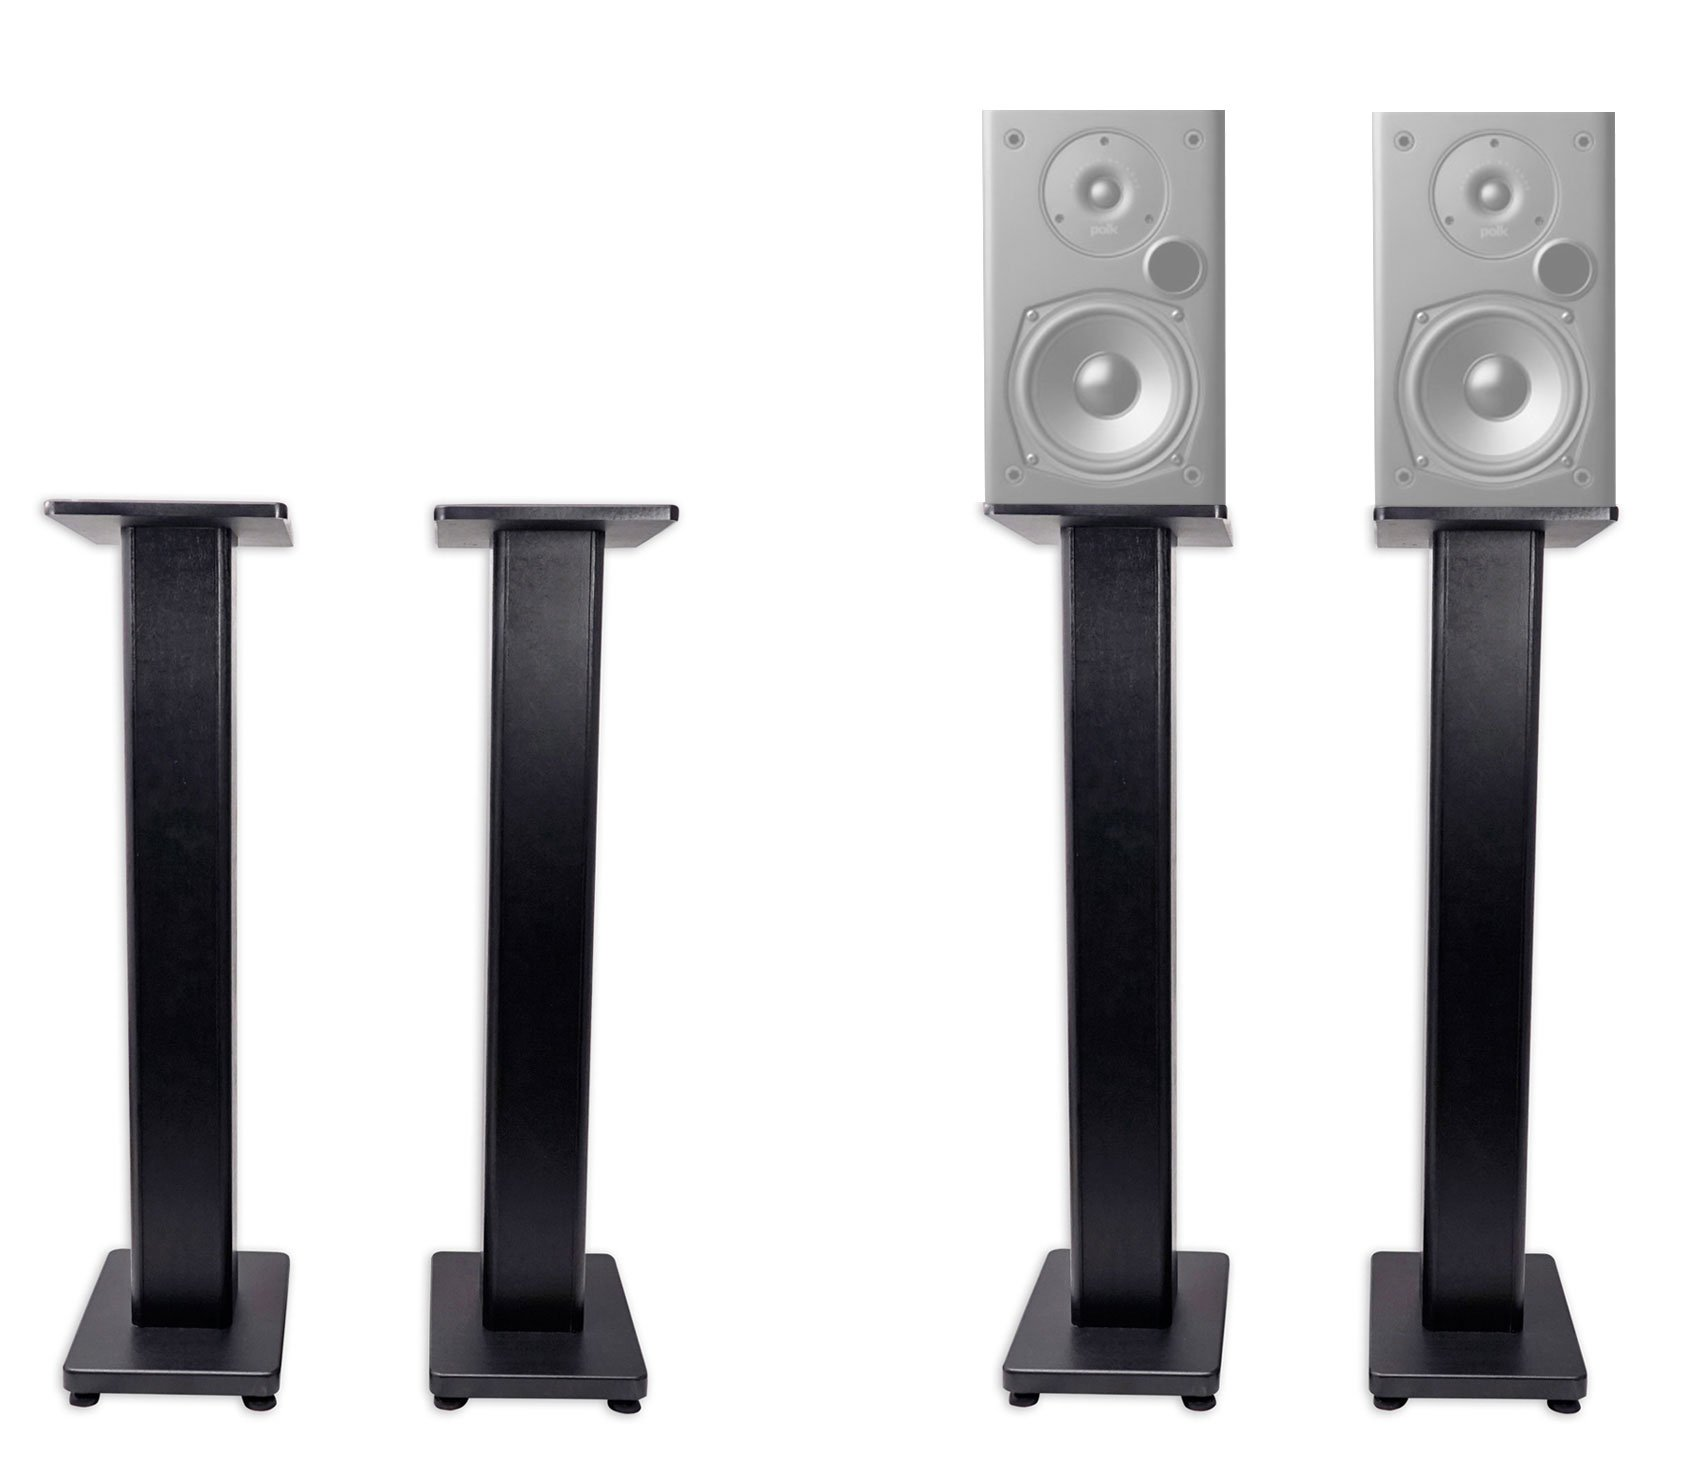 Pair 36'' Bookshelf Speaker Stands For Polk Audio T15 Bookshelf Speakers